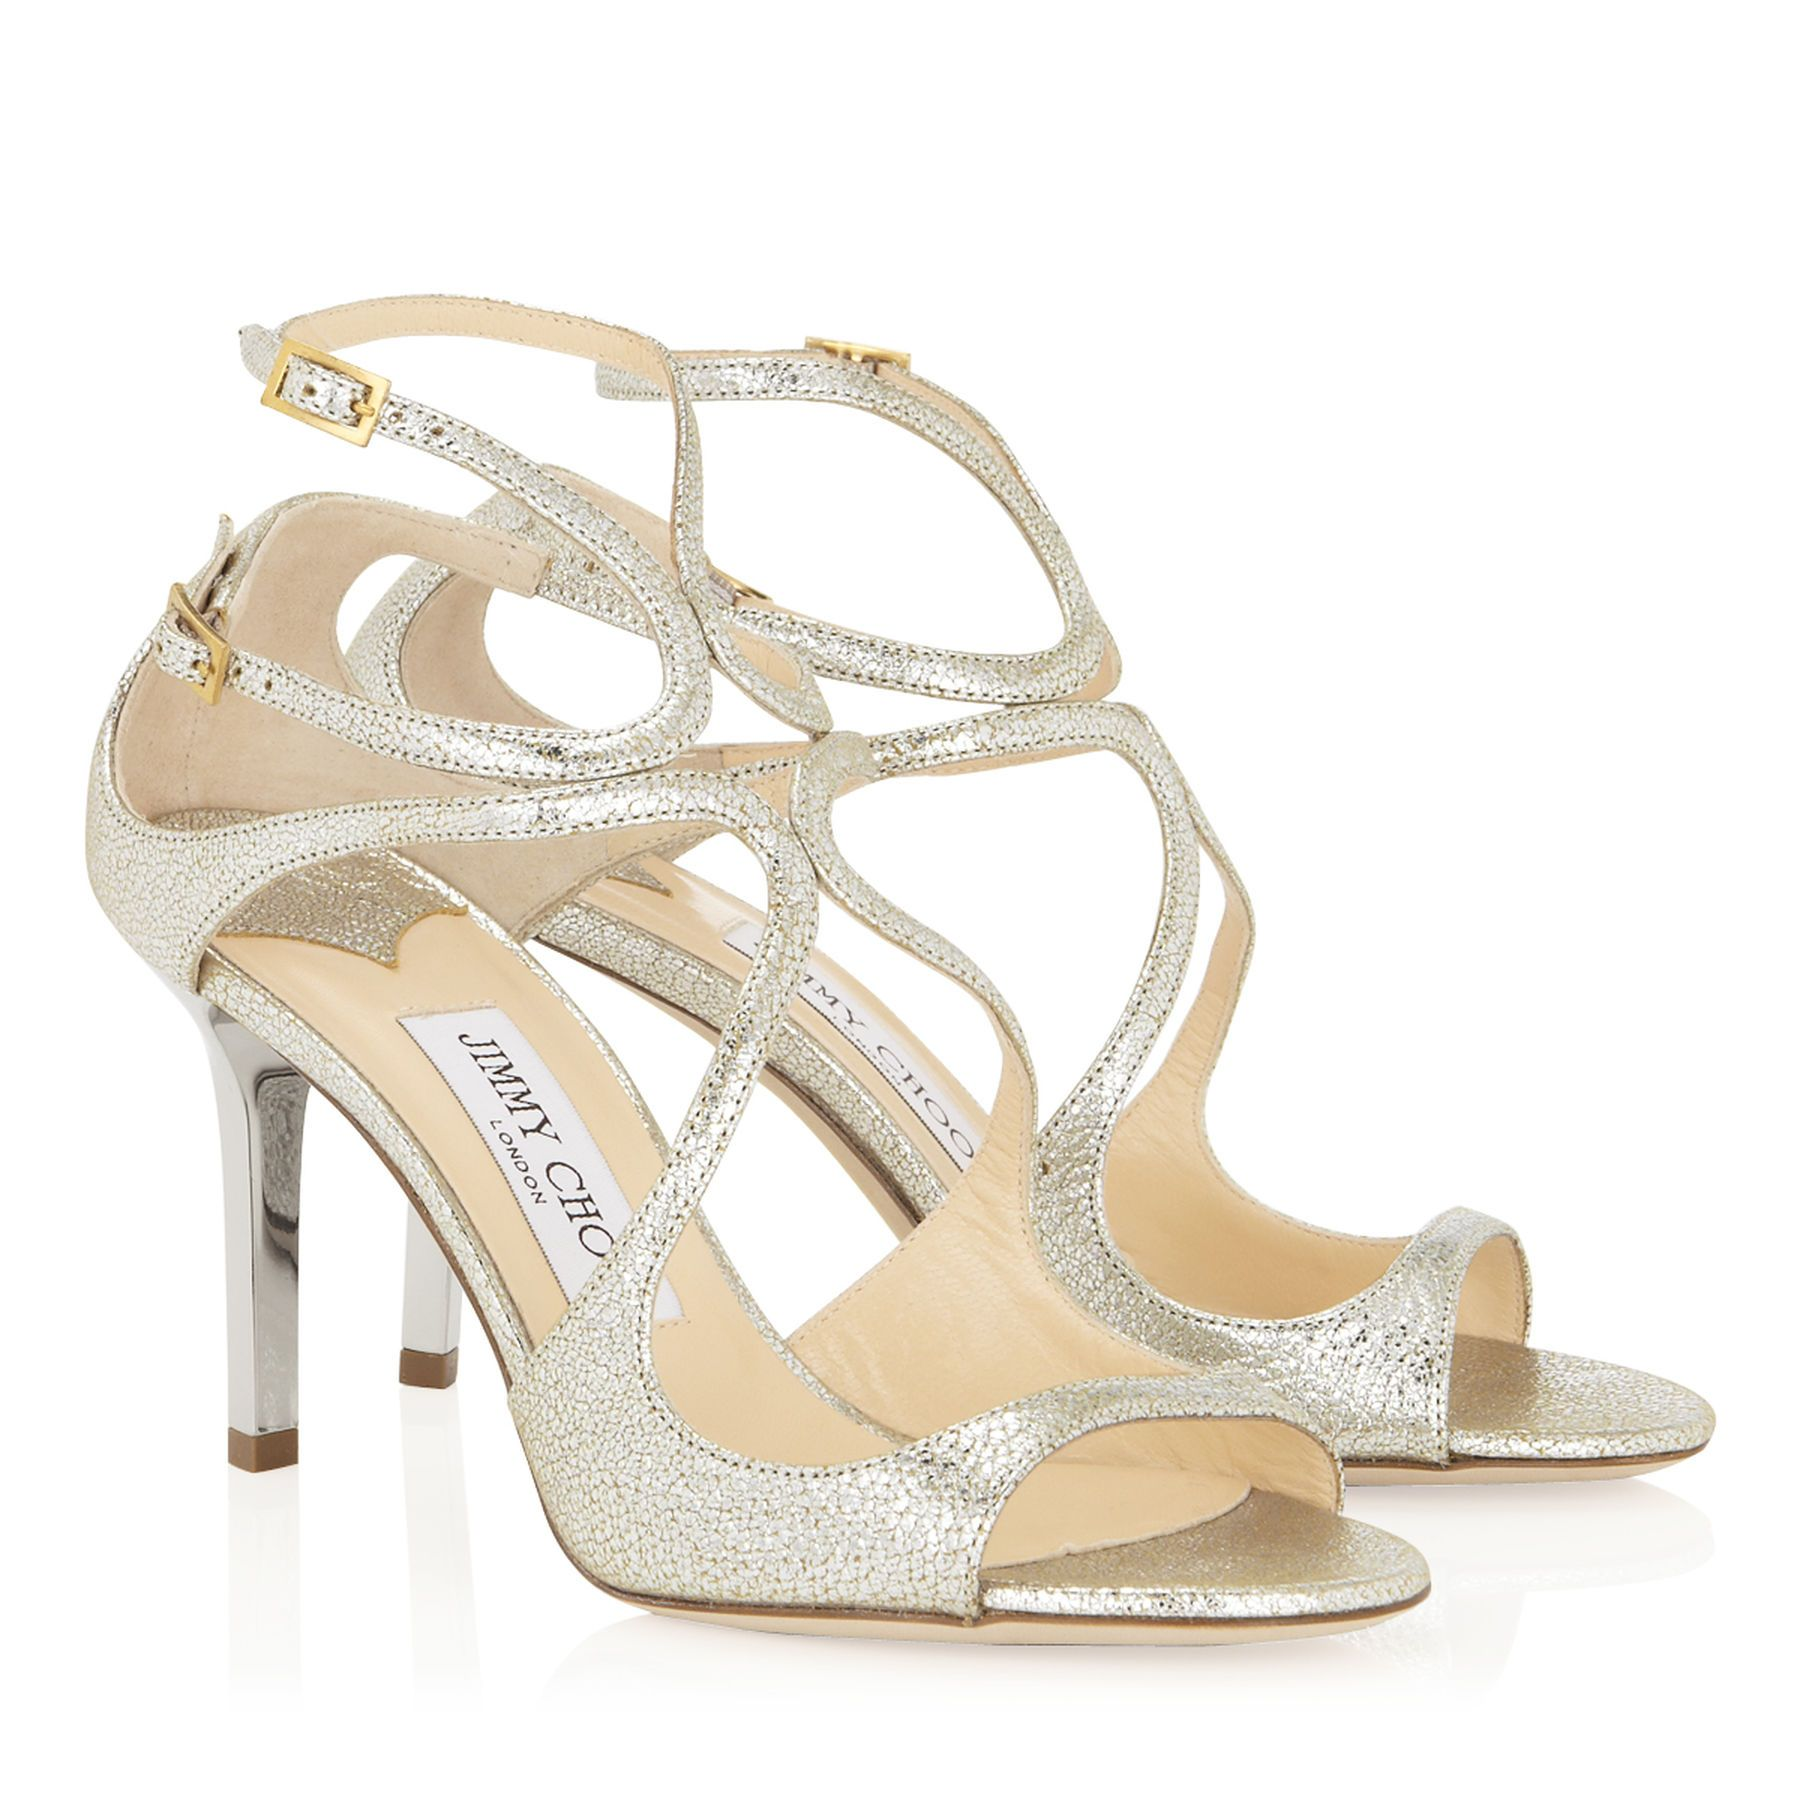 Champagne Glitter Strappy Sandals From Jimmy Choo Discover Our Collection And Shop For The Latest Trends Today